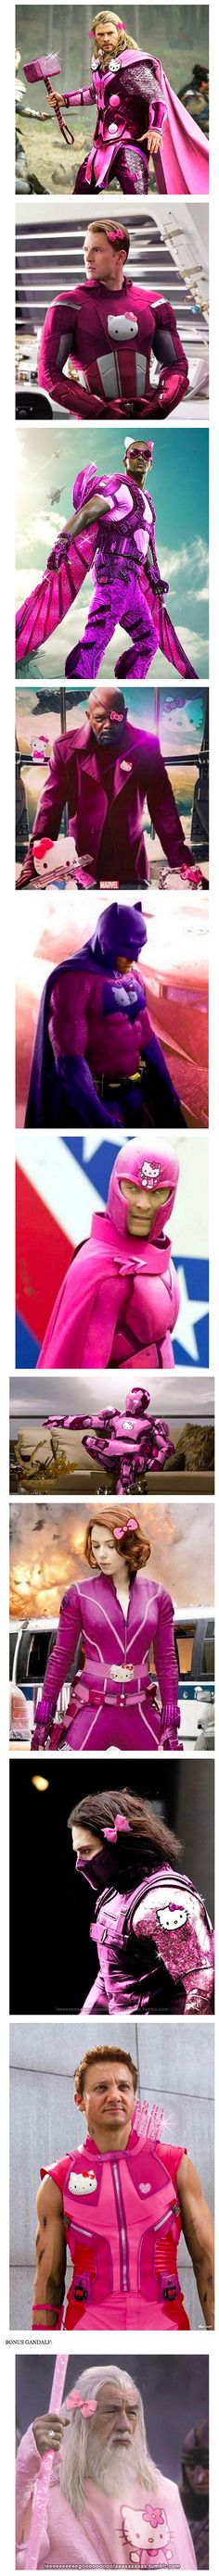 Turns out Photoshopping superheroes into Hello Kitty themed costumes is a thing that people are doing.